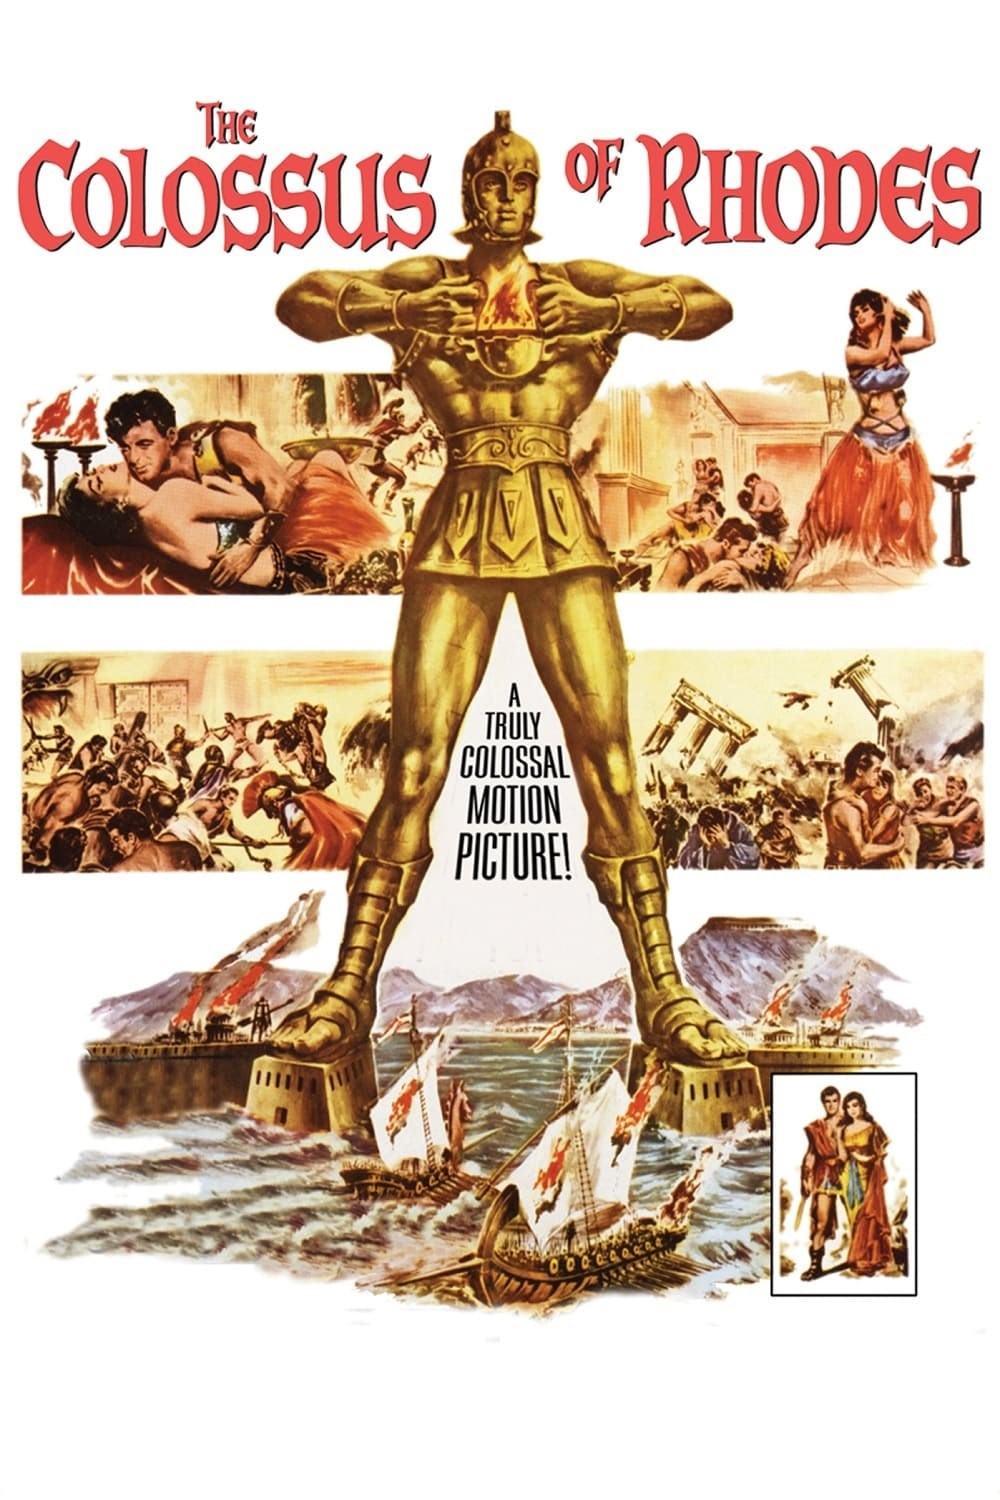 where is the colossus of rhodes located